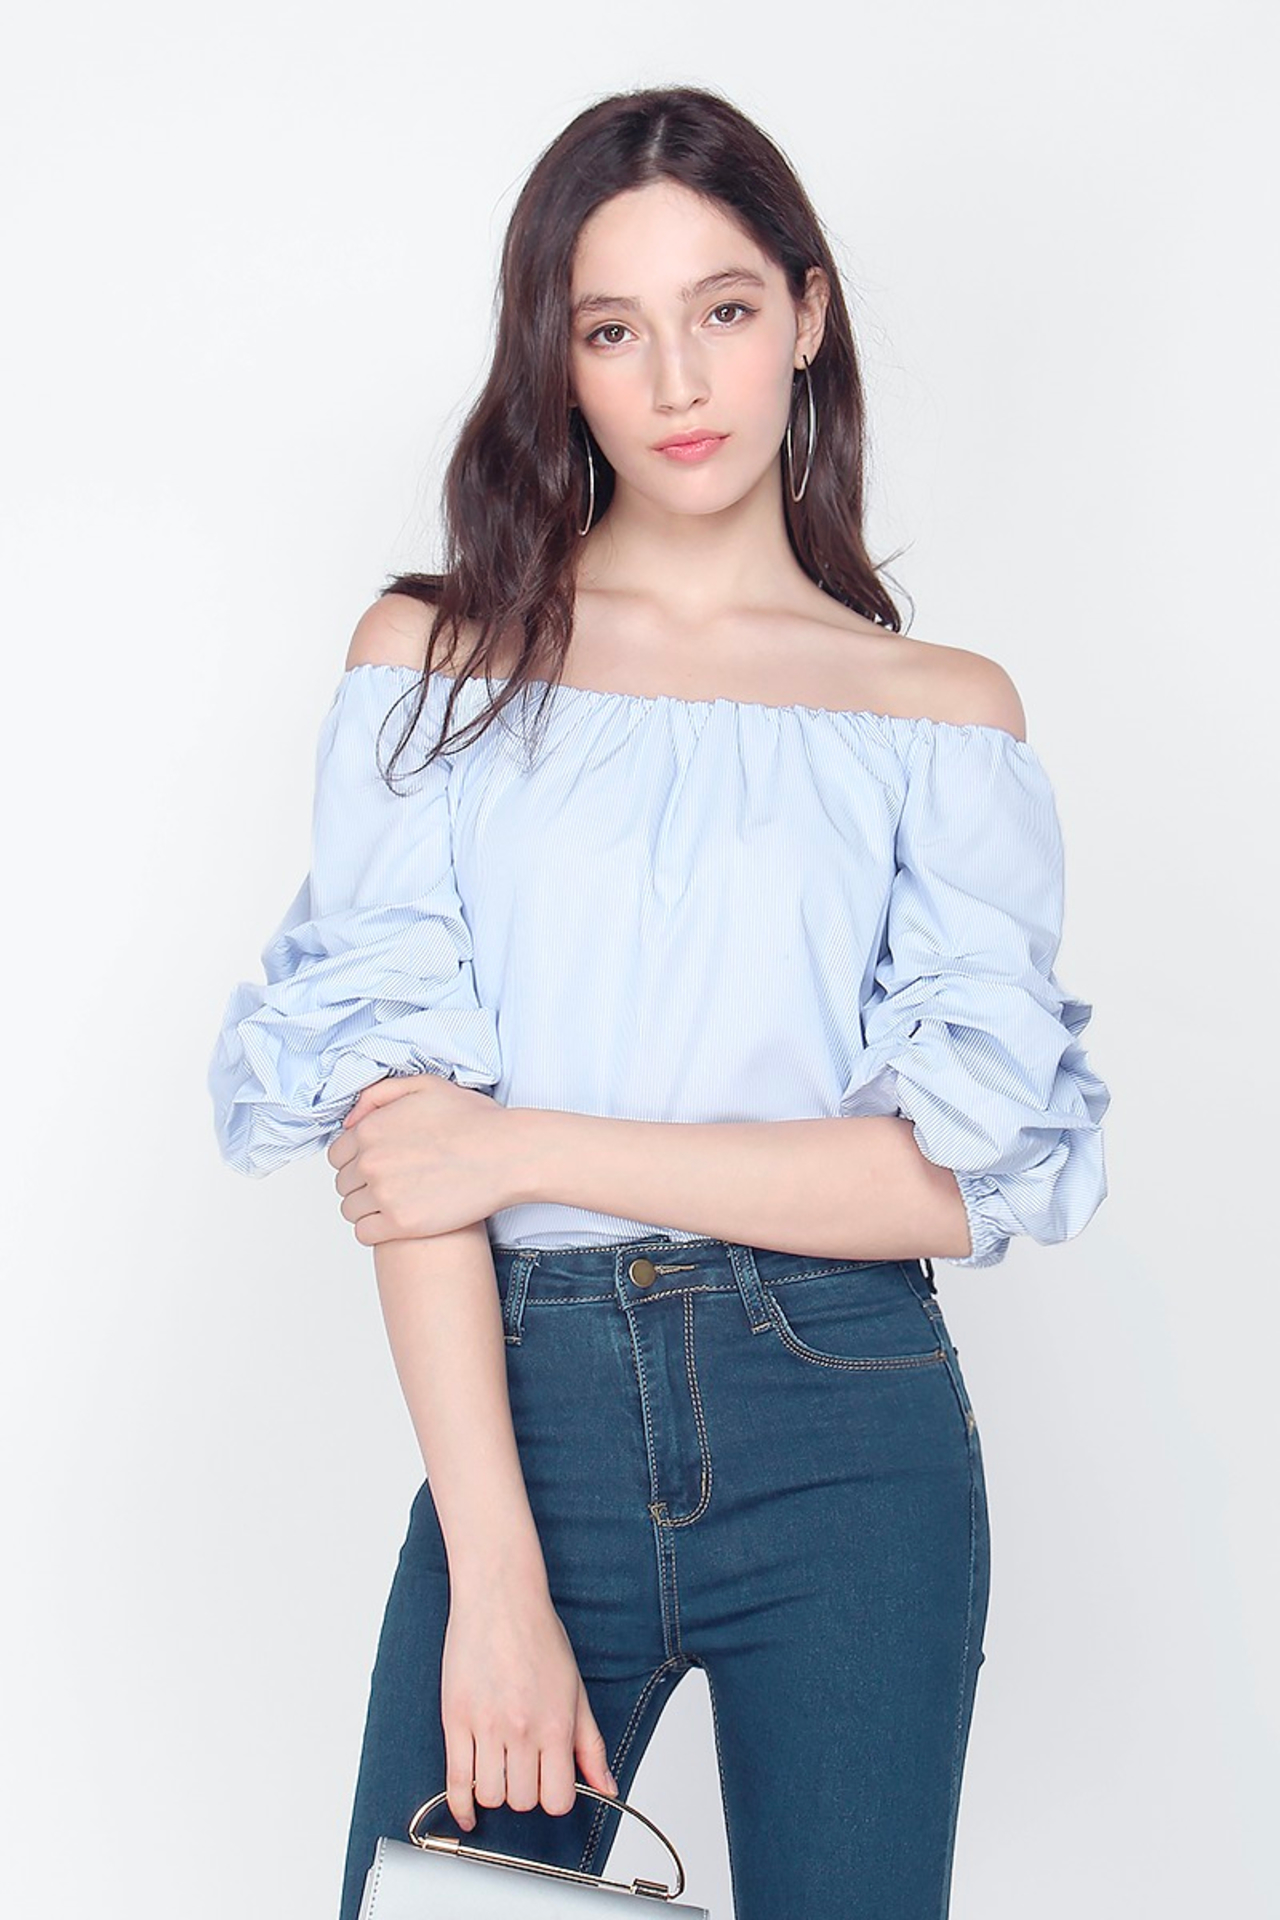 _Girlinskinnyfit_ - laguna-ruffle-off-shoulder-top